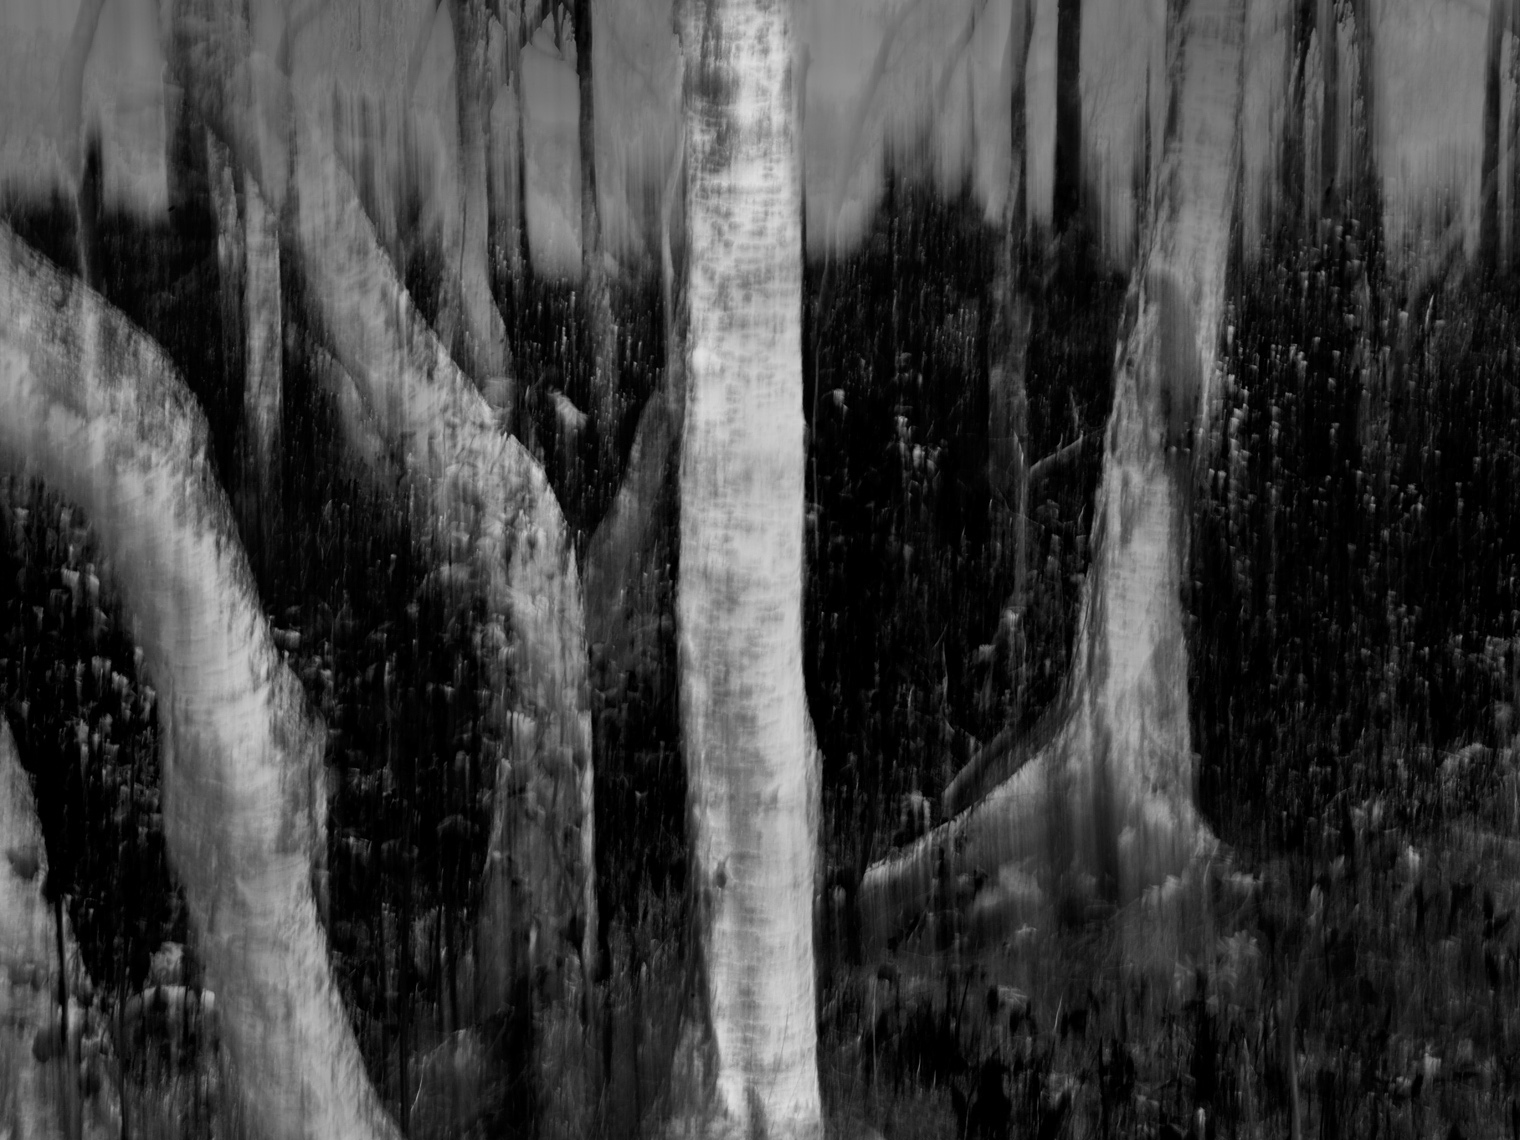 Grey Forest by Photographer Aki-Pekka Sinikoski